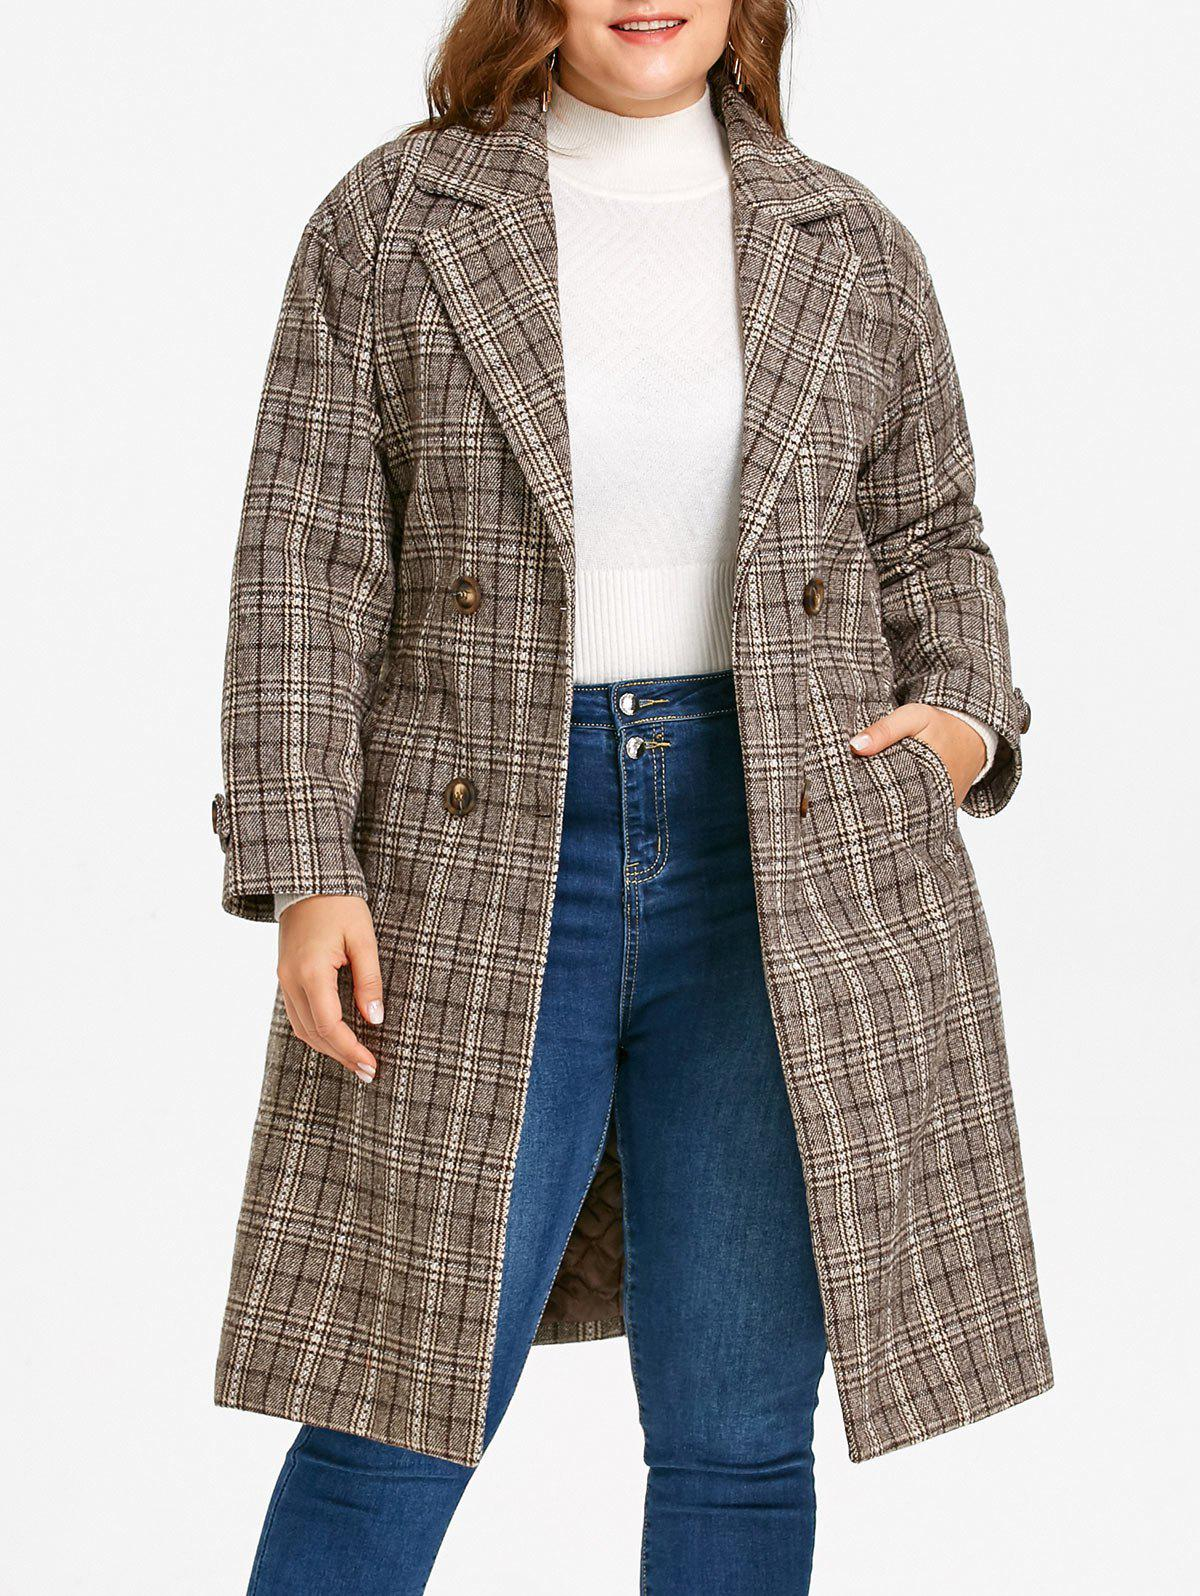 Drop Shoulder Plaid Tweed Plus Size Coat - COFFEE 5XL